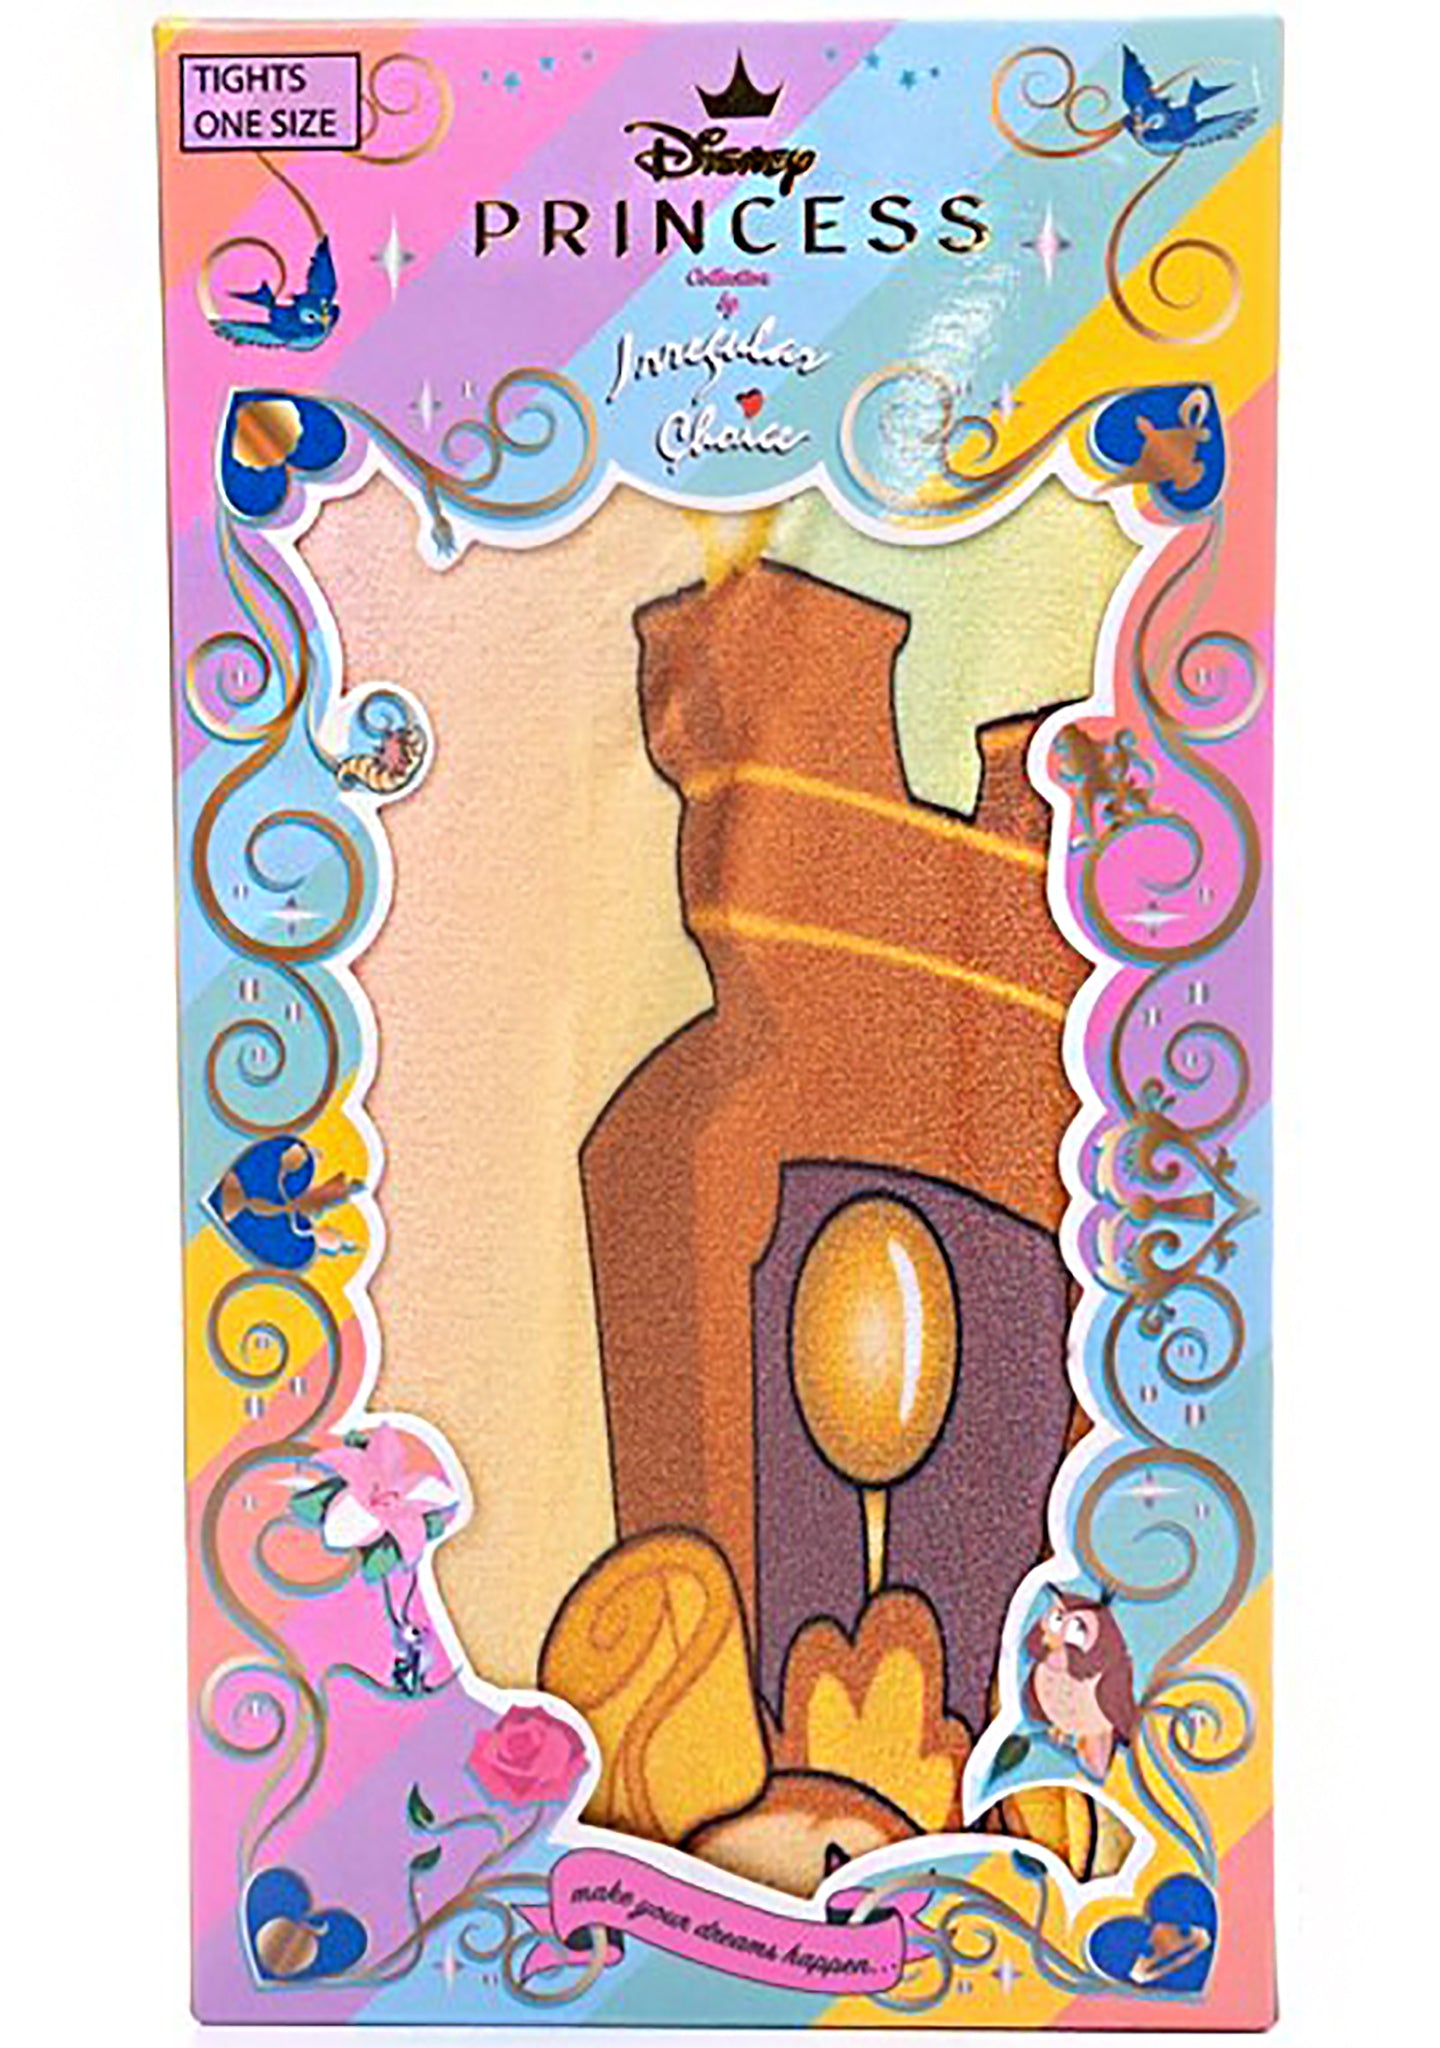 X Disney Beauty and the Beast Be our Guest Tights